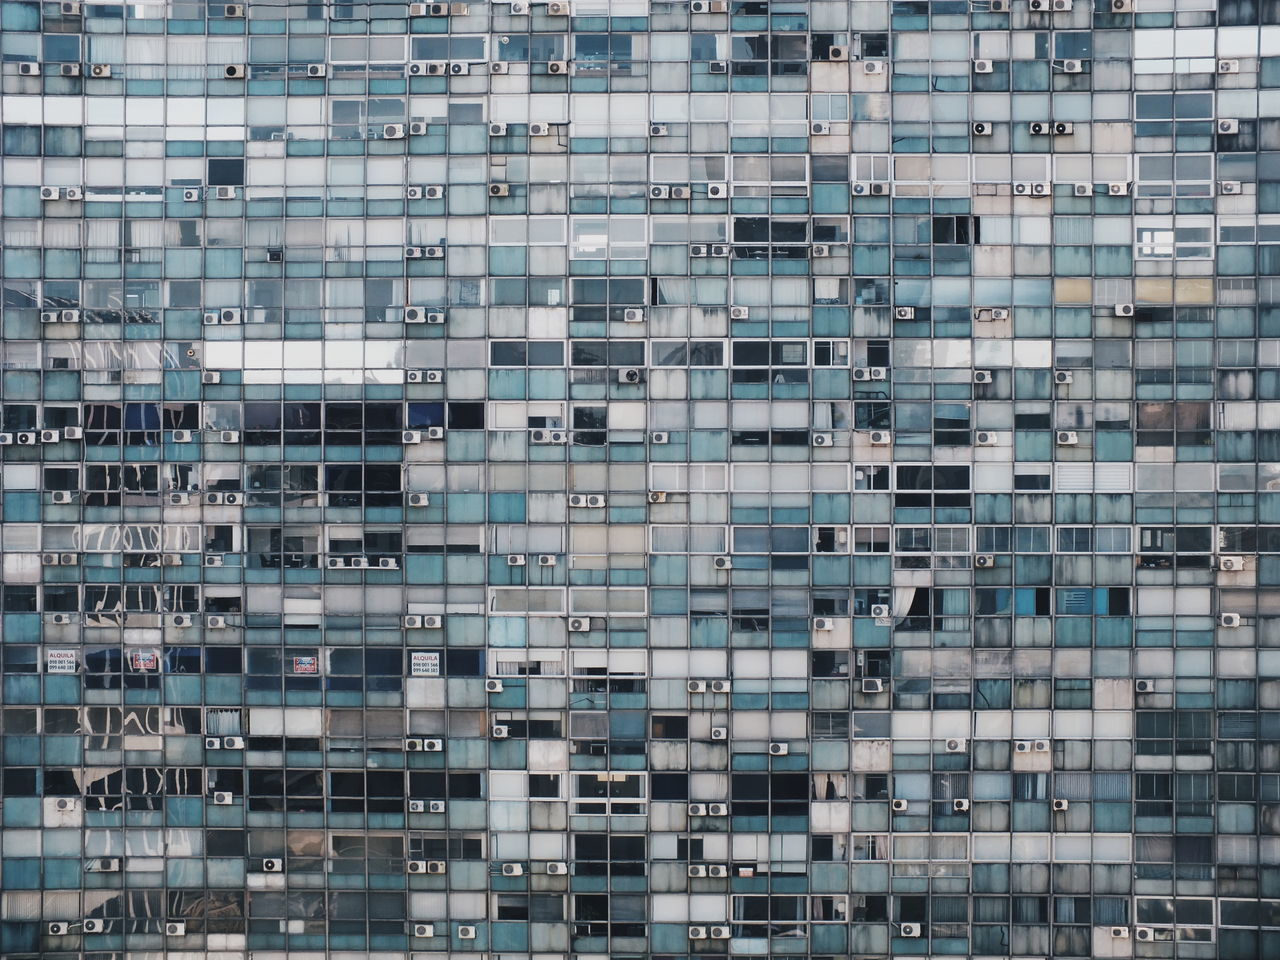 mil ventanas (Thousand windows) Architecture Building Exterior Built Structure Full Frame City Modern Building Story Outdoors Architectural Feature Photooftheday Windows Geometric Shape Landscape Showcase: October Photography Foto Photoshoot Photo Scenics No People Architecture The Week On EyeEm Minimalist Architecture The Architect - 2017 EyeEm Awards